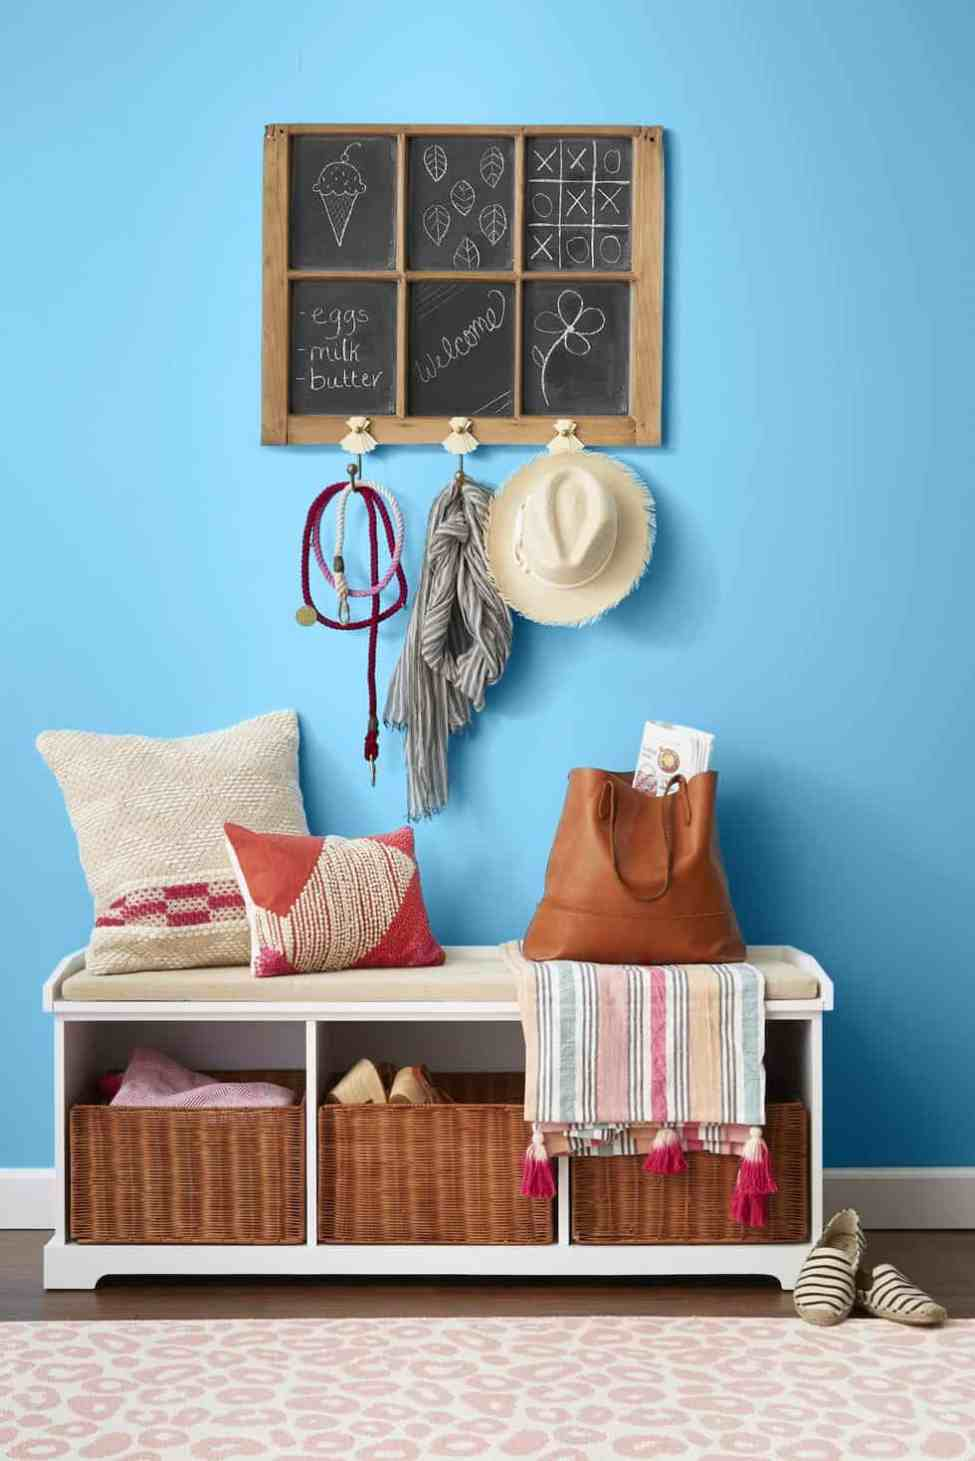 8 Upcycled Furniture Ideas That Turn Trash Into Treasure